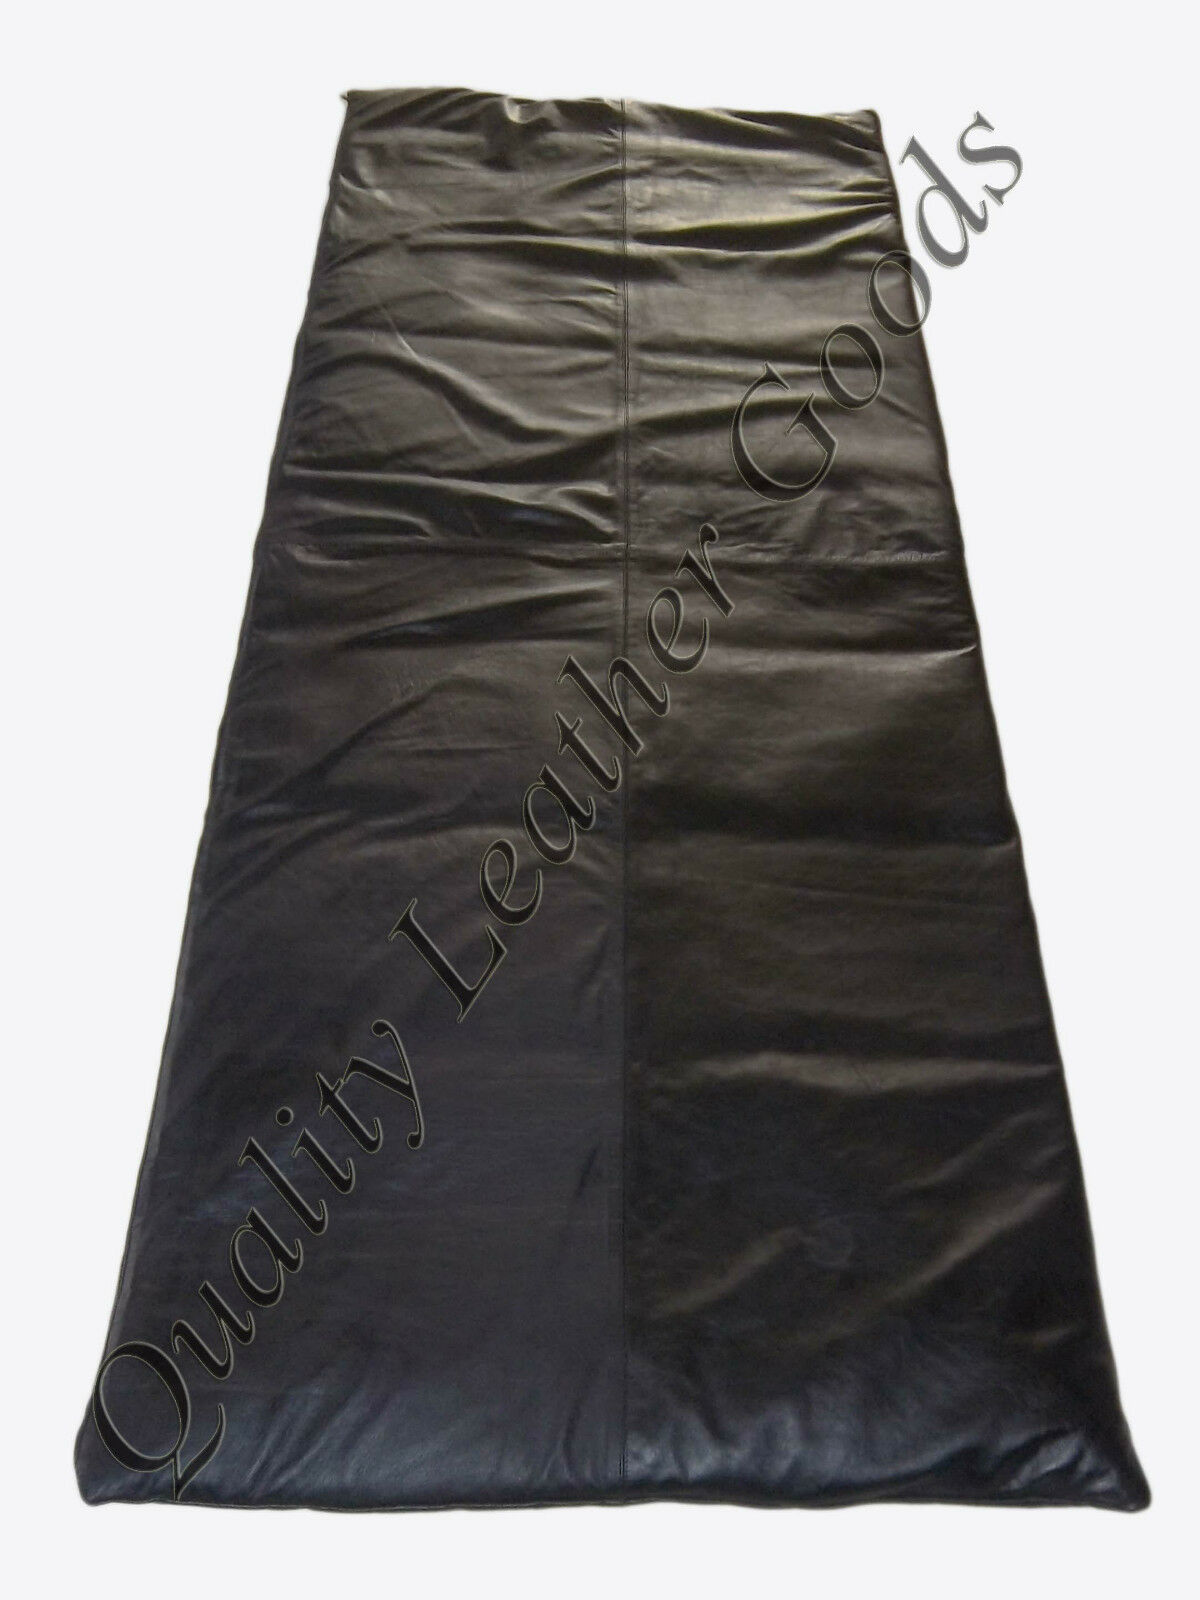 SYNTHETIC LEATHER SLEEPING BAG CAMPING BAG SOFT LUXURY COMFORTABLE ENVELOPE ZIP